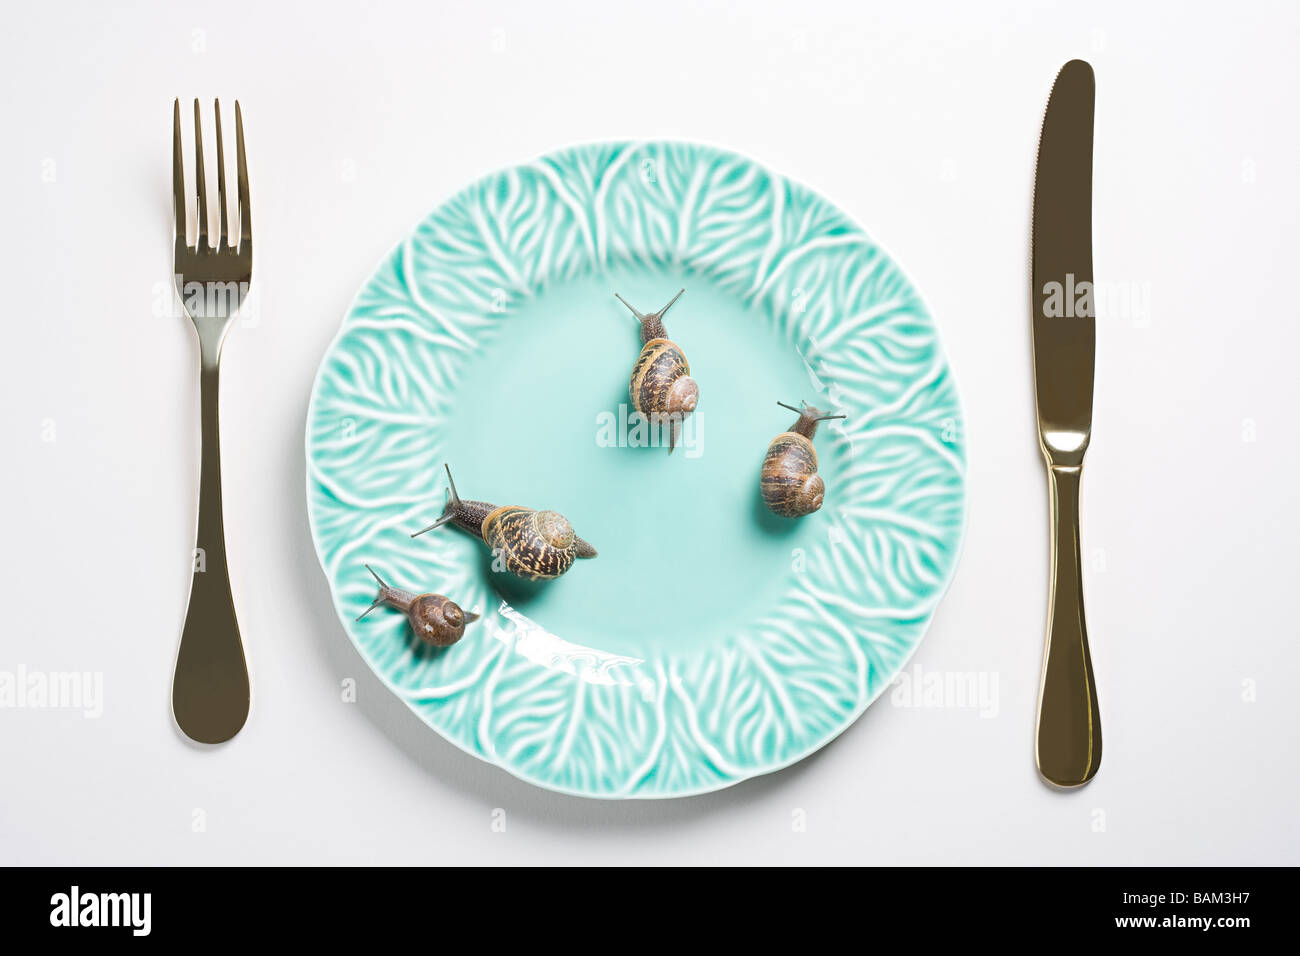 Four snails on a plate - Stock Image